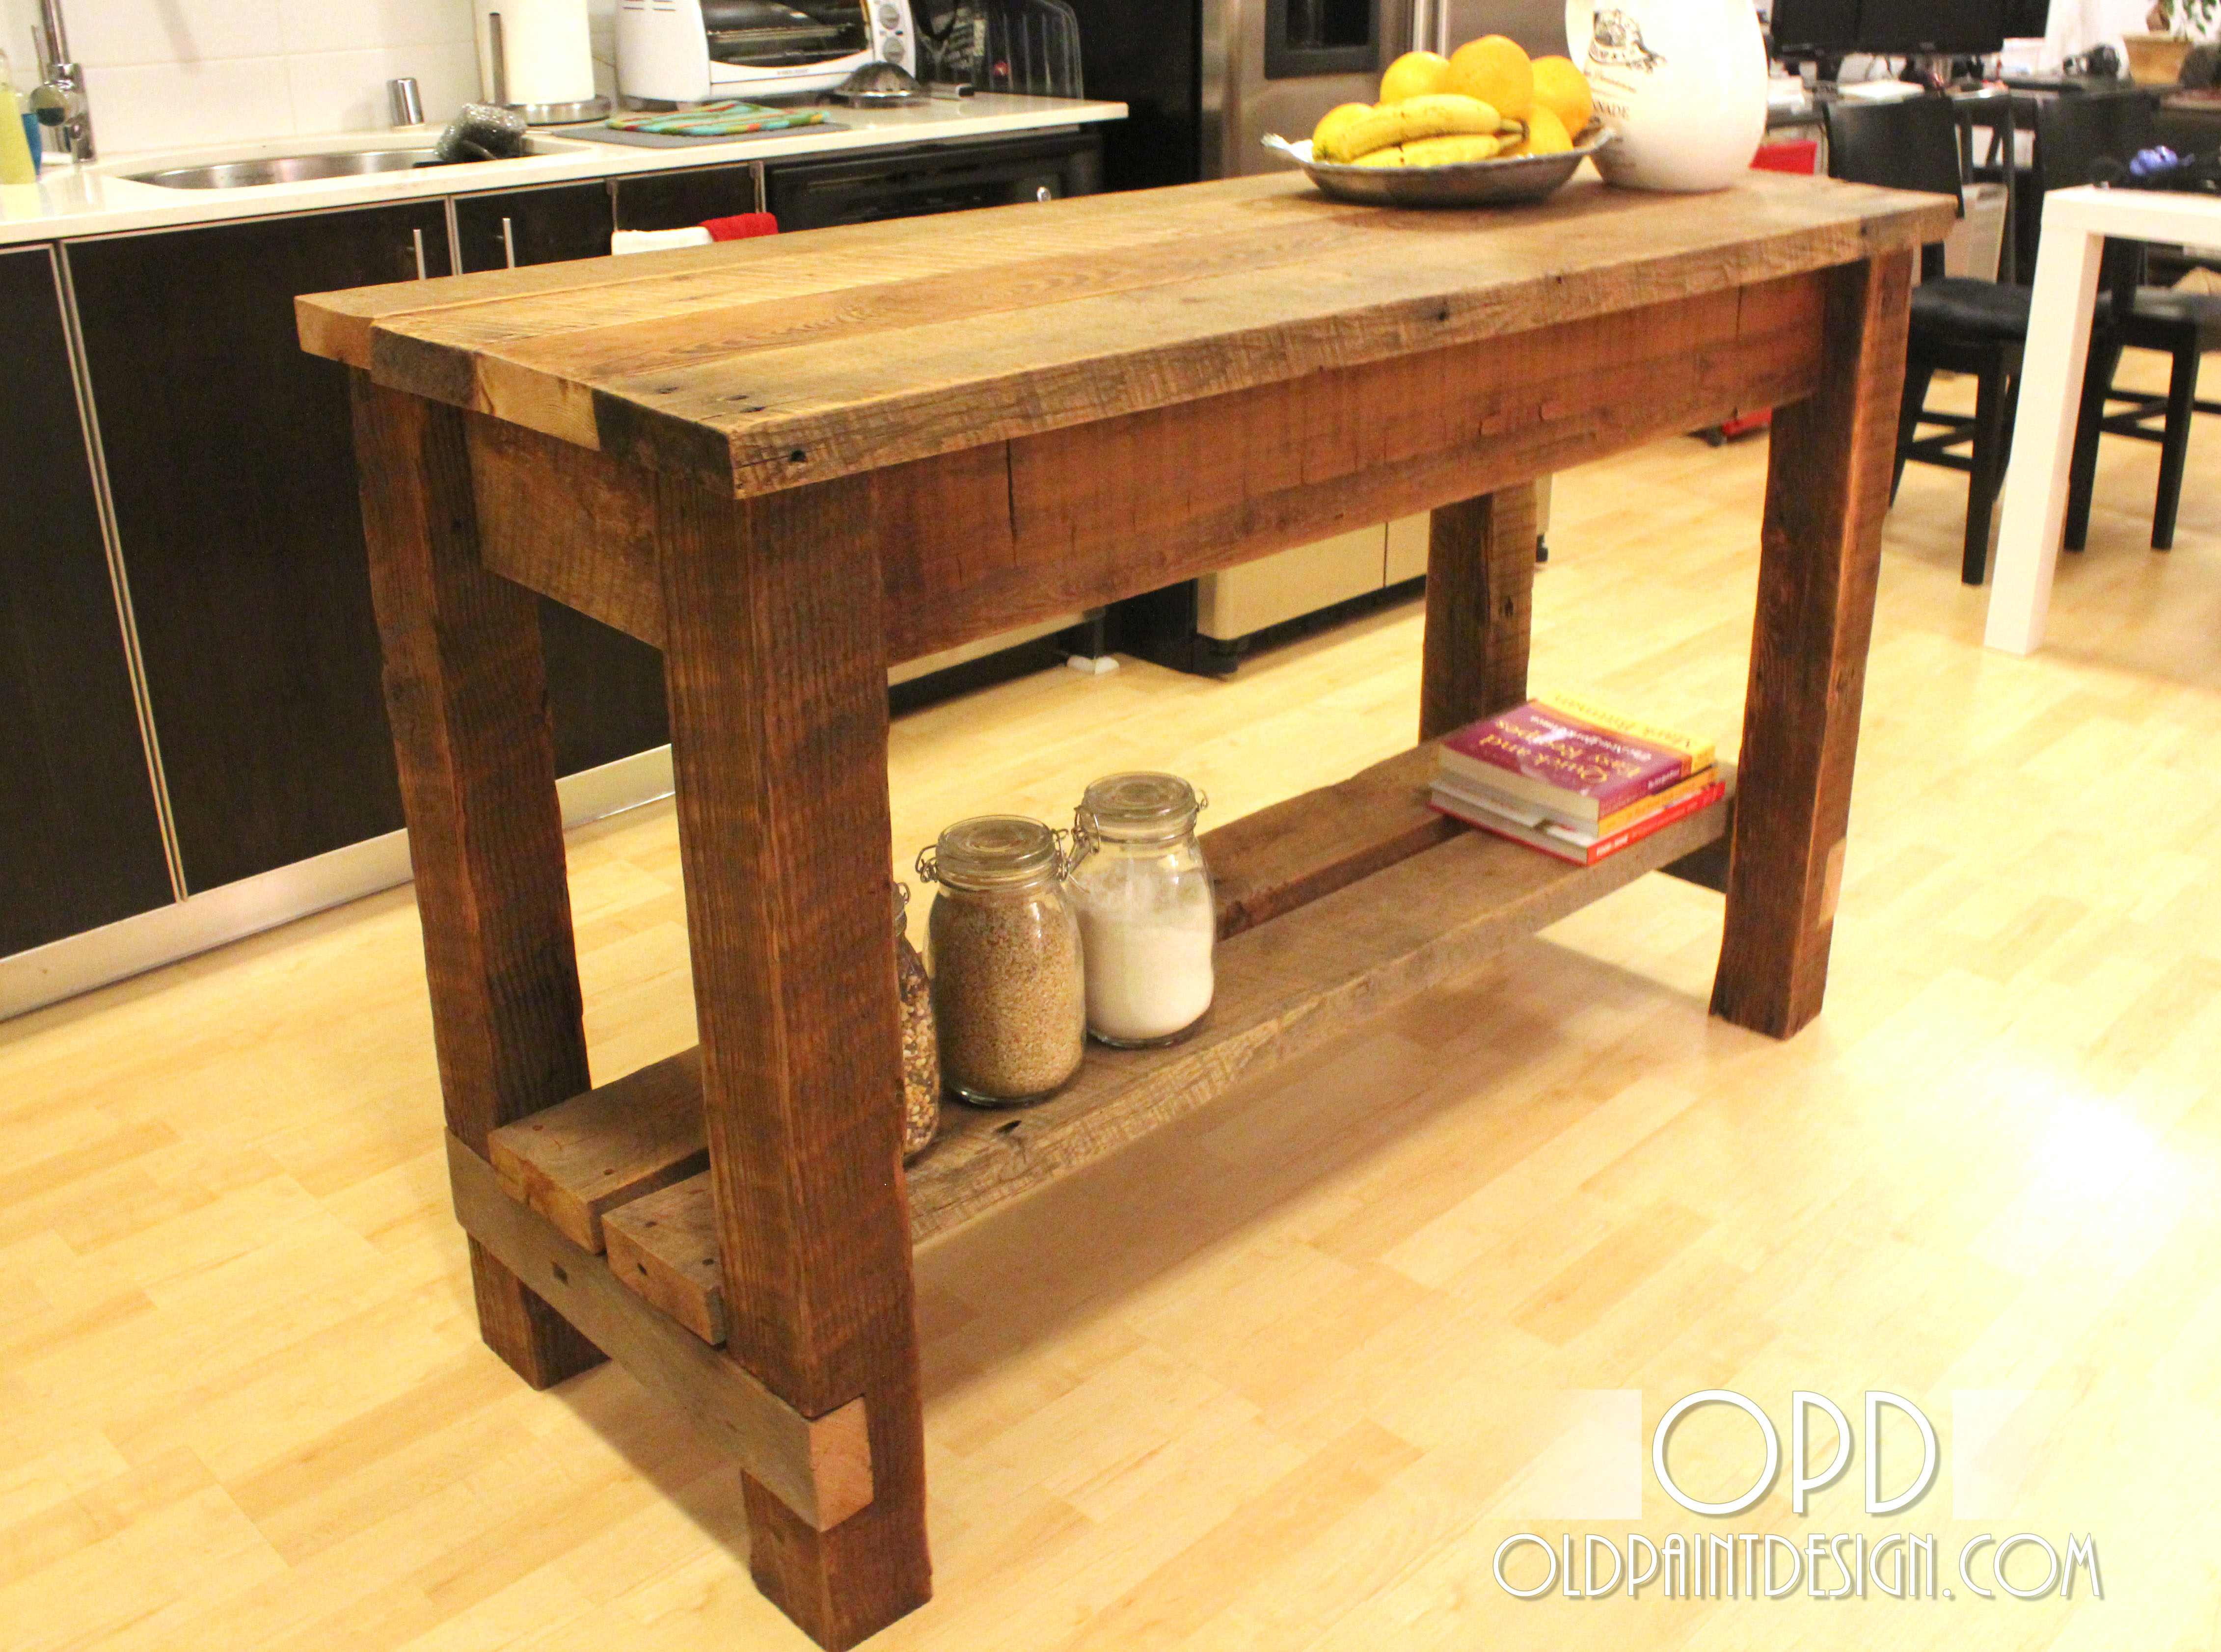 unique skinny sofa table construction-Modern Skinny sofa Table Plan